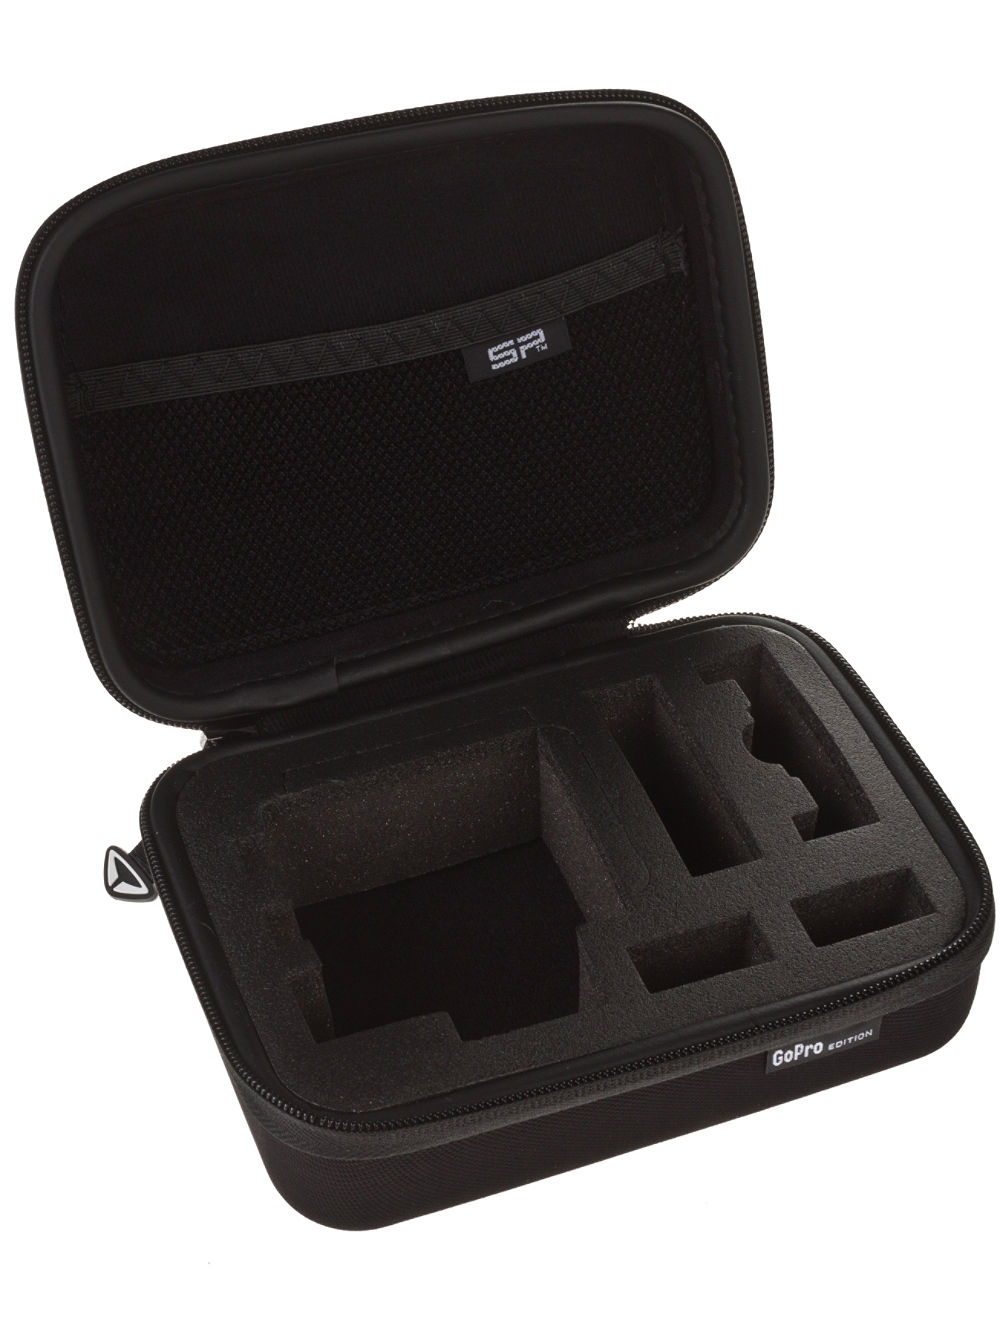 sp-gadgets-sp-pov-case-30-xs-gopro-edition-black